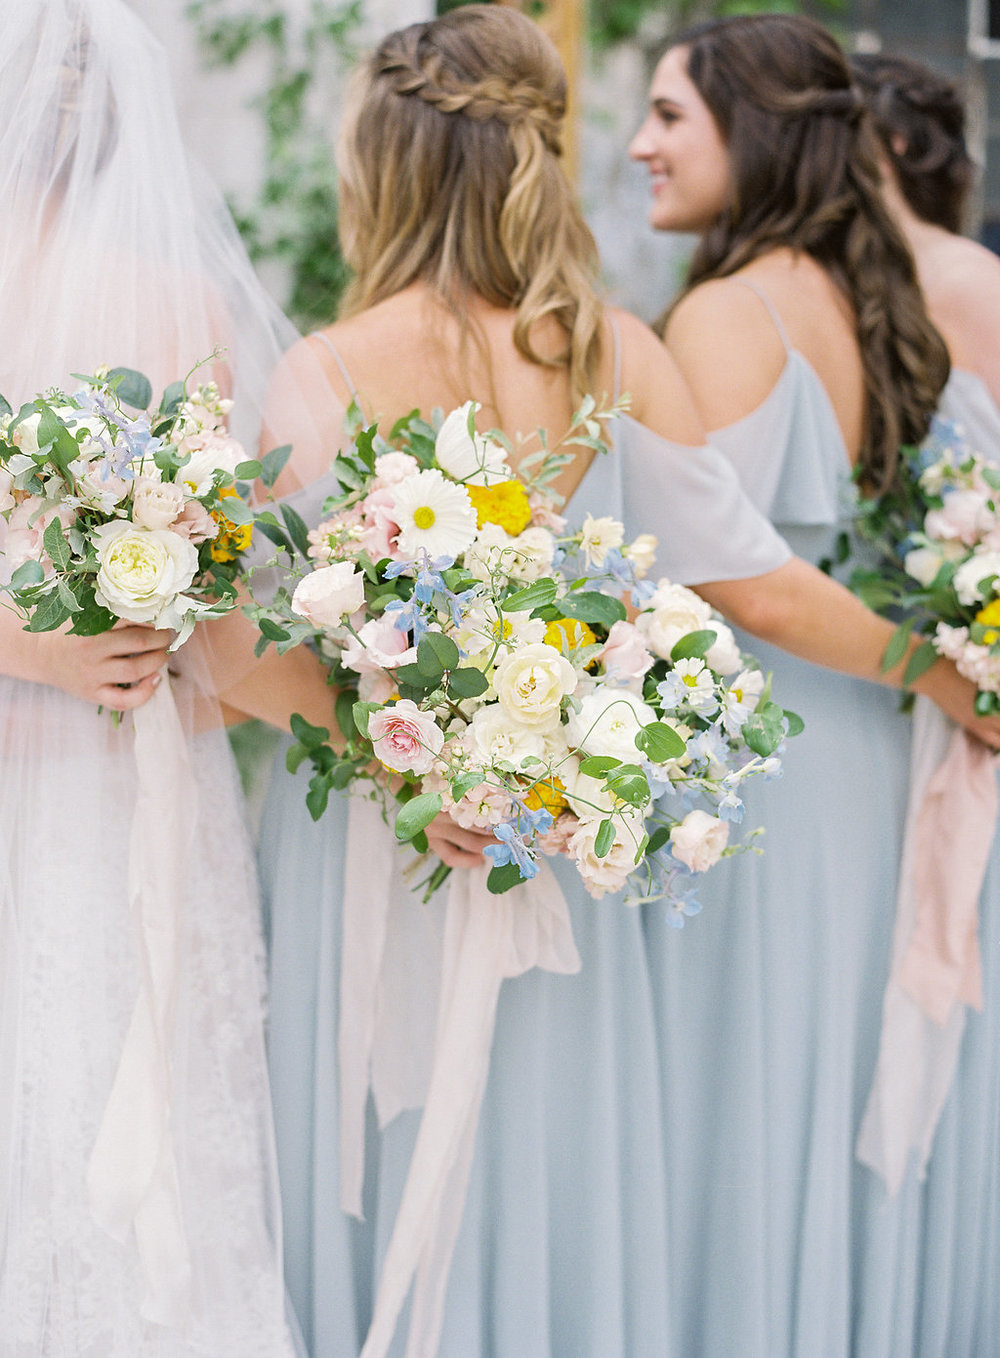 bridesmaids-frou-frou-chic-ribbon.jpg